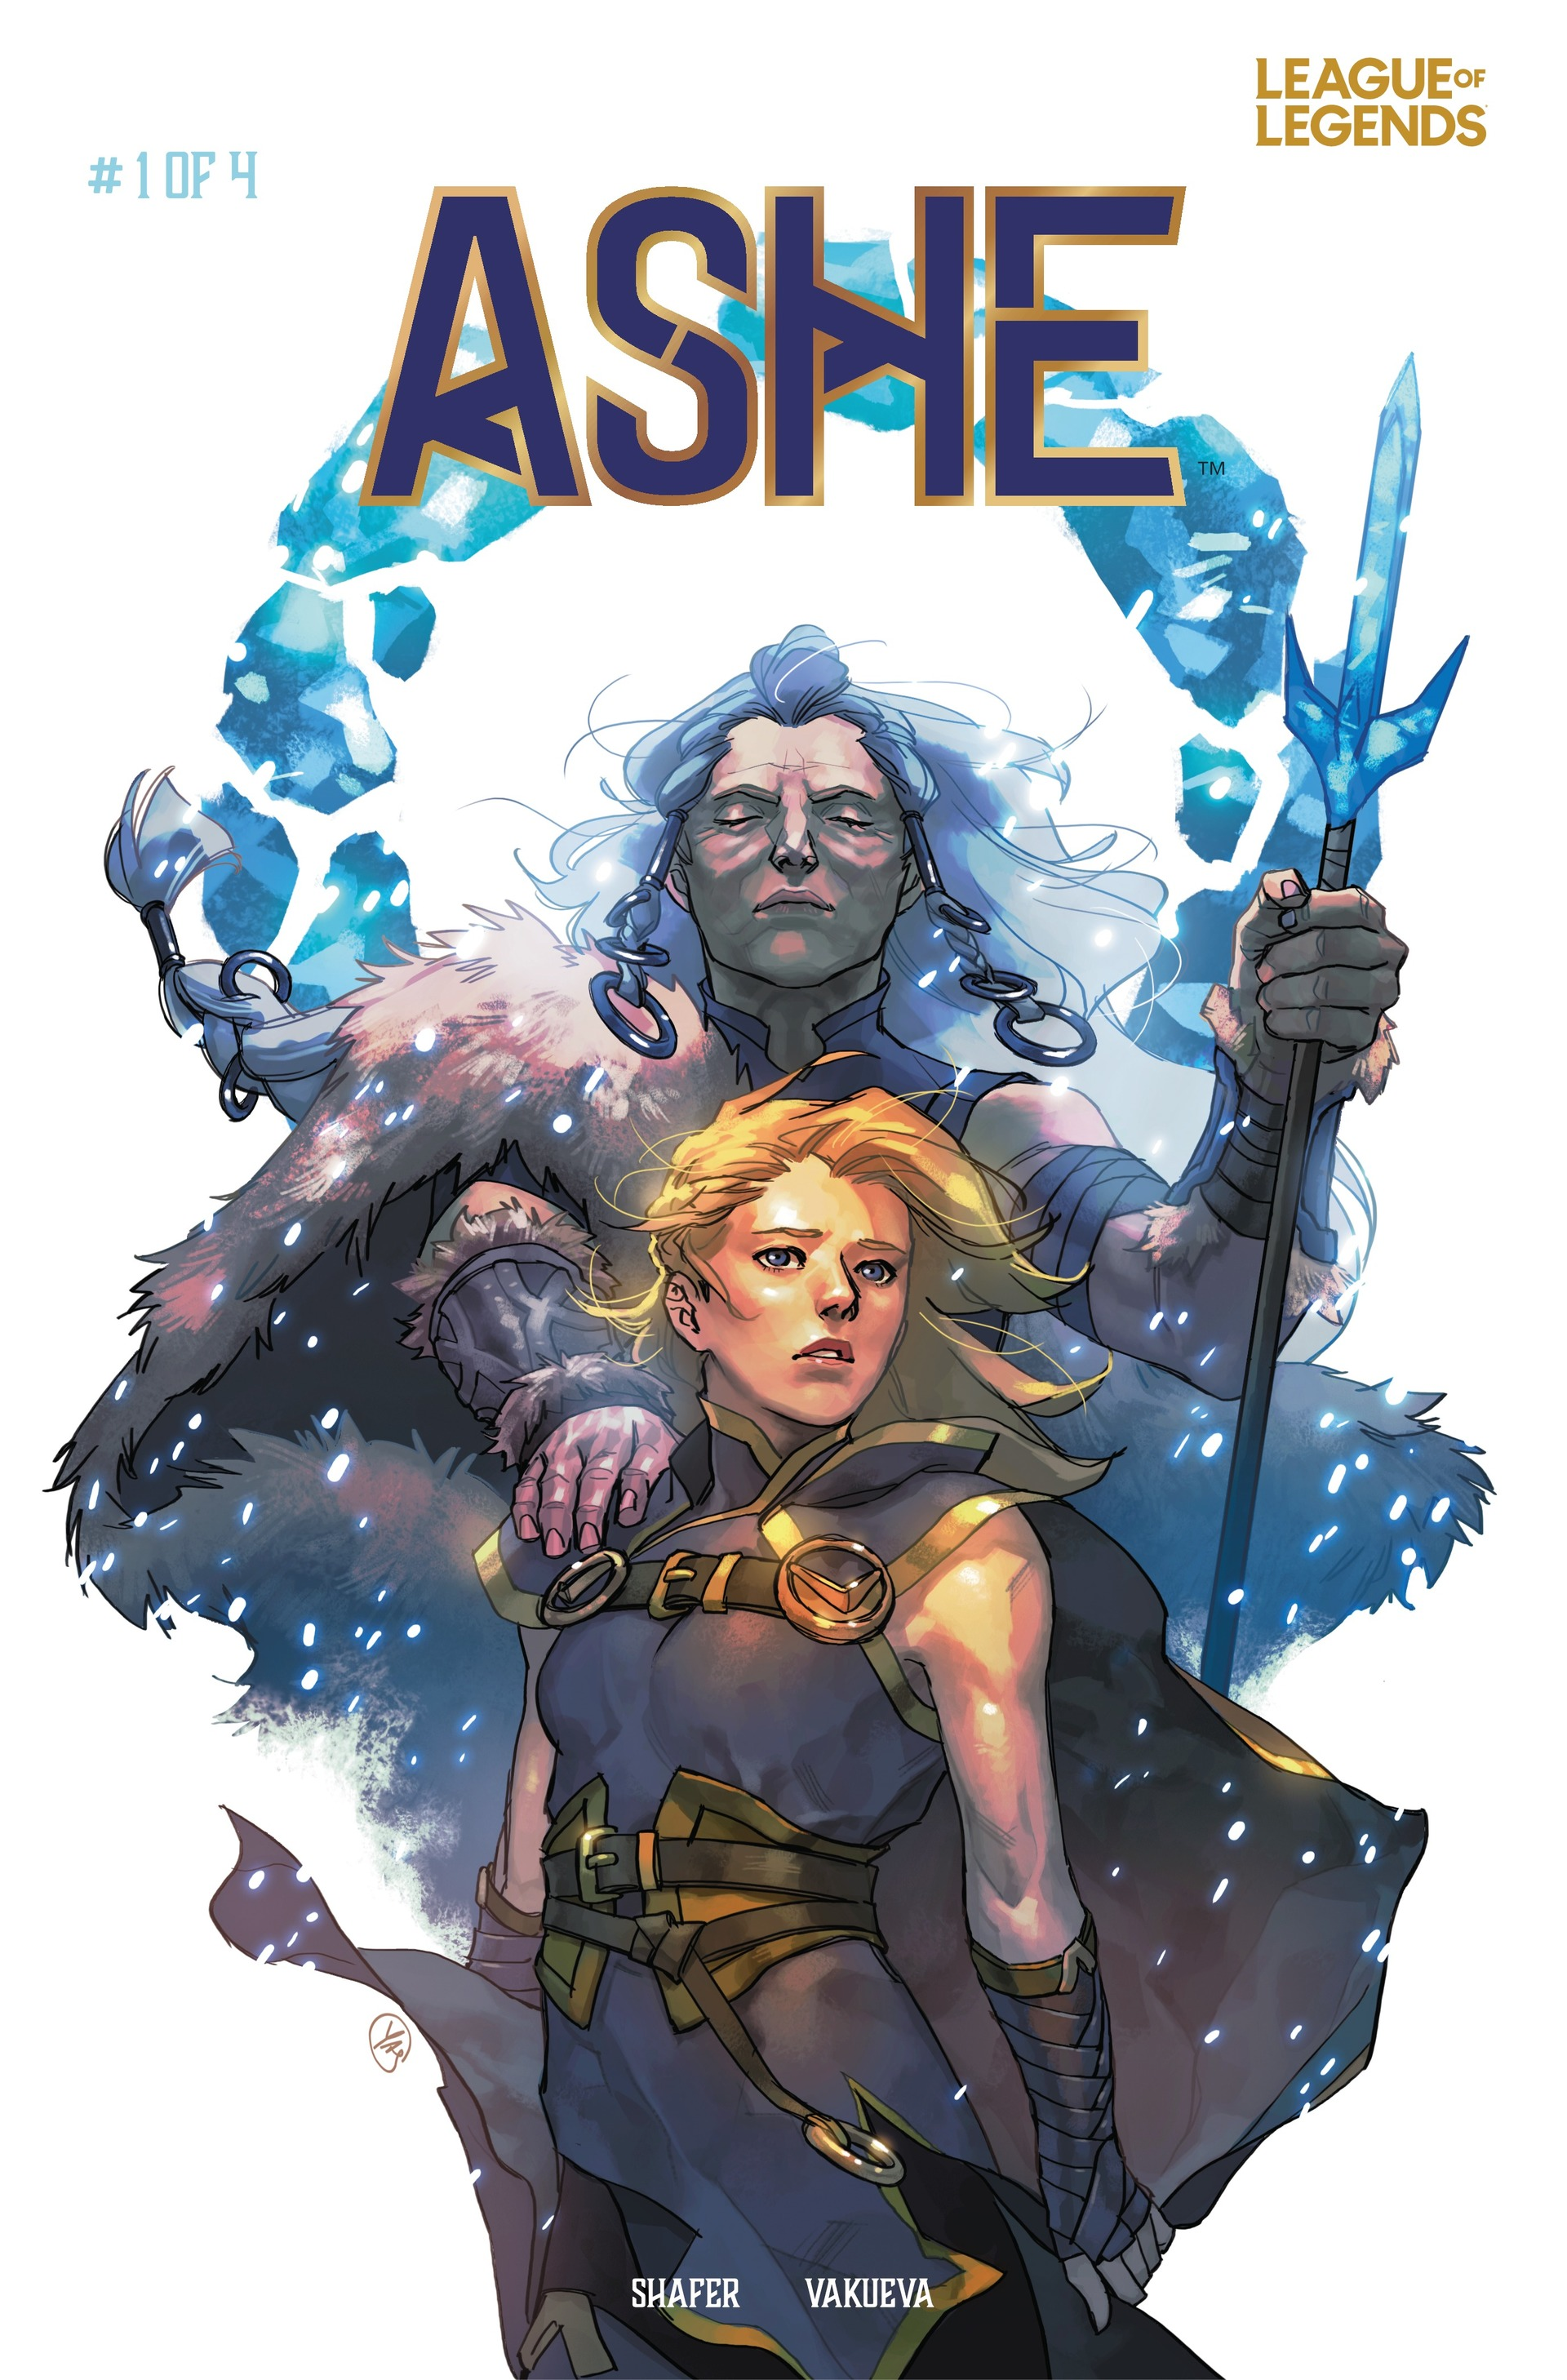 Issue #1 - Comics - Universe of League of Legends